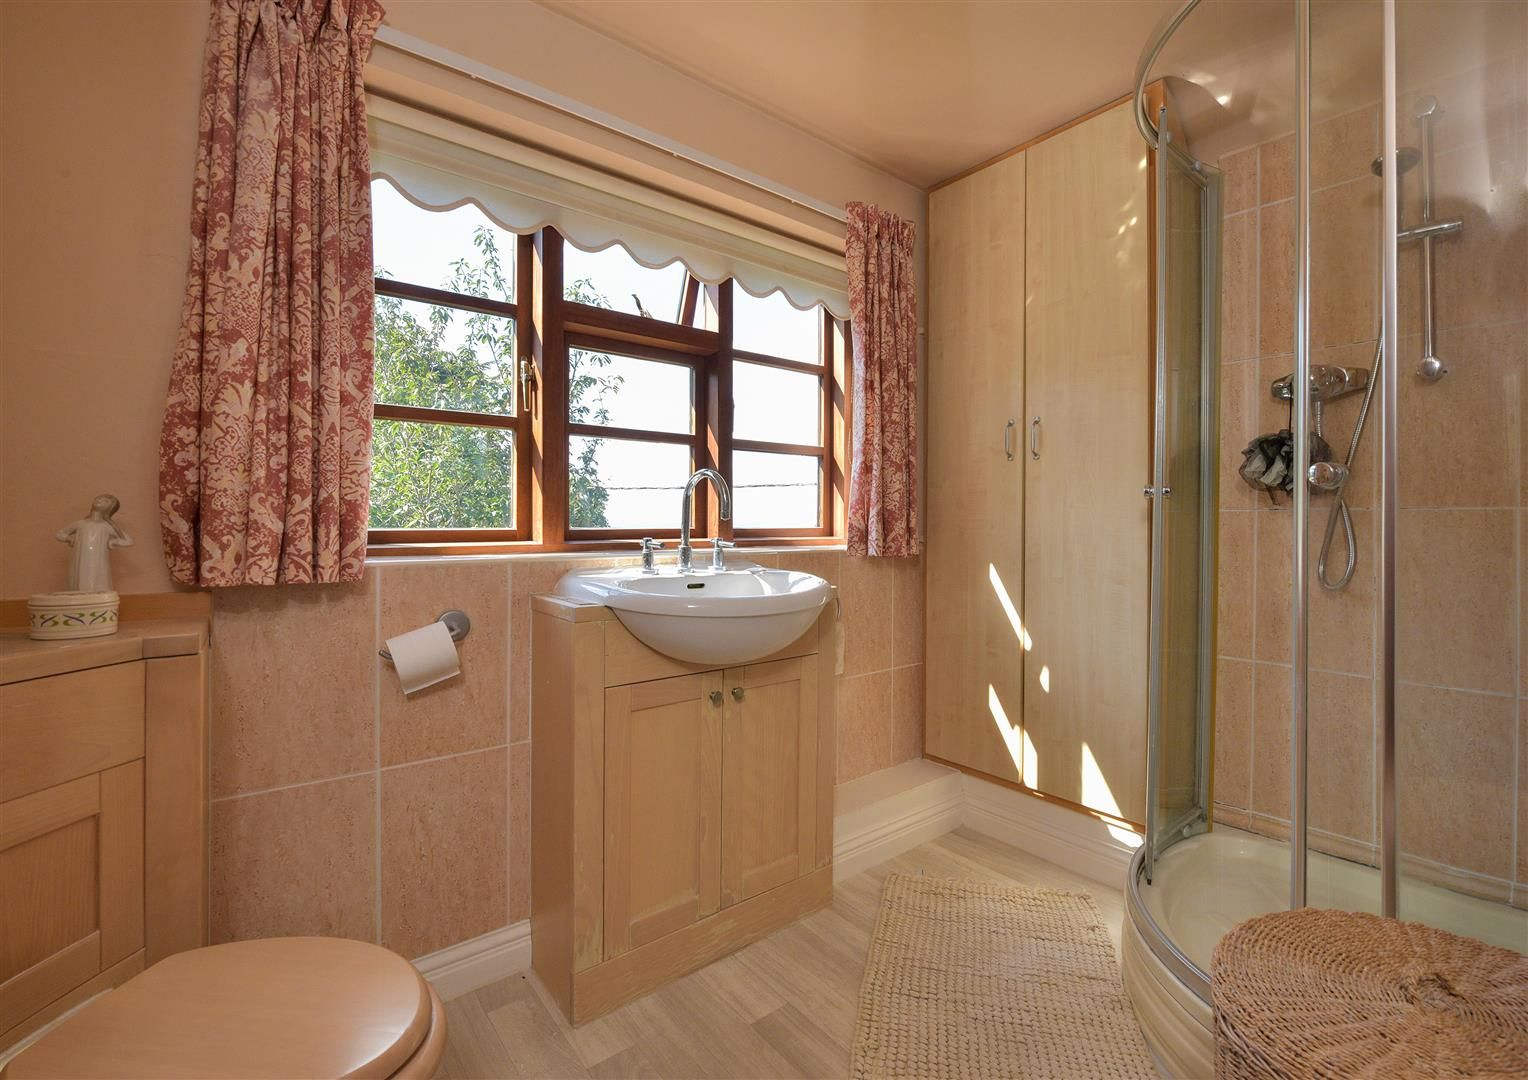 2 bed semi-detached for sale in Clent 9